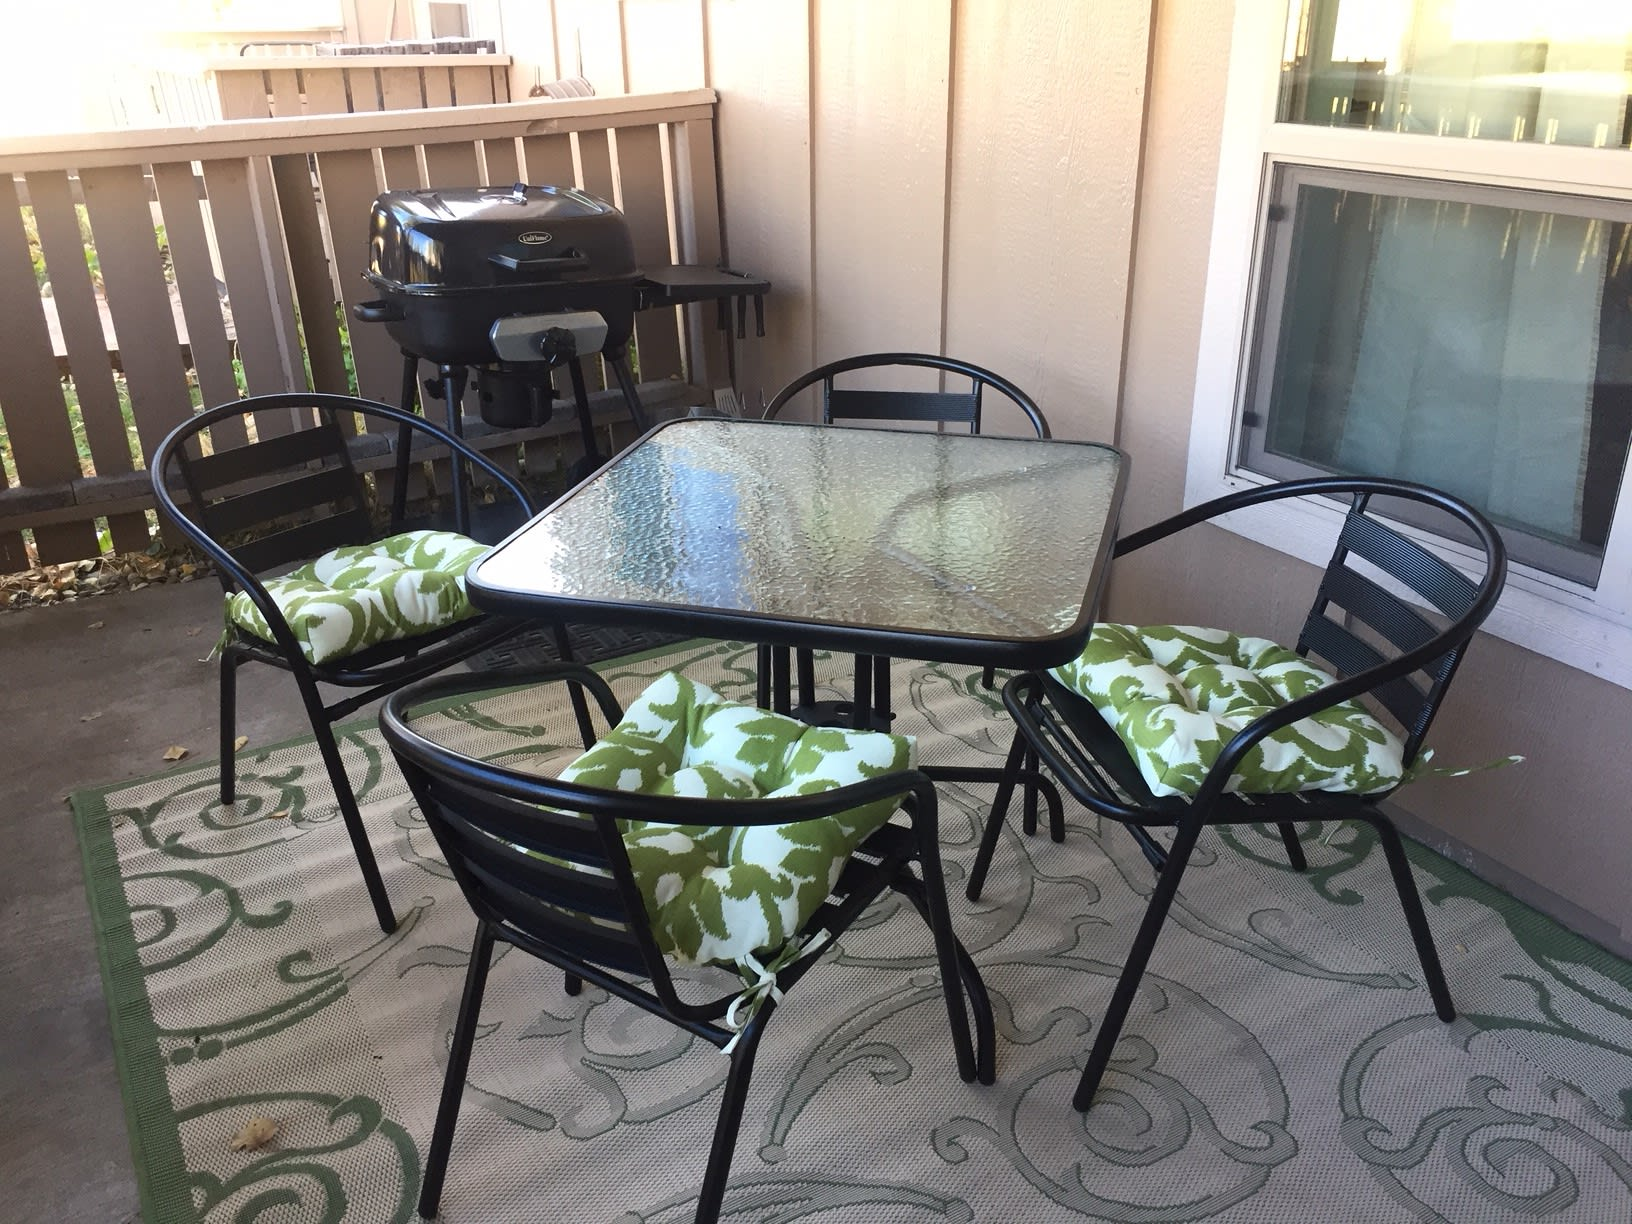 Bring your meal outside for an al fresco experience.